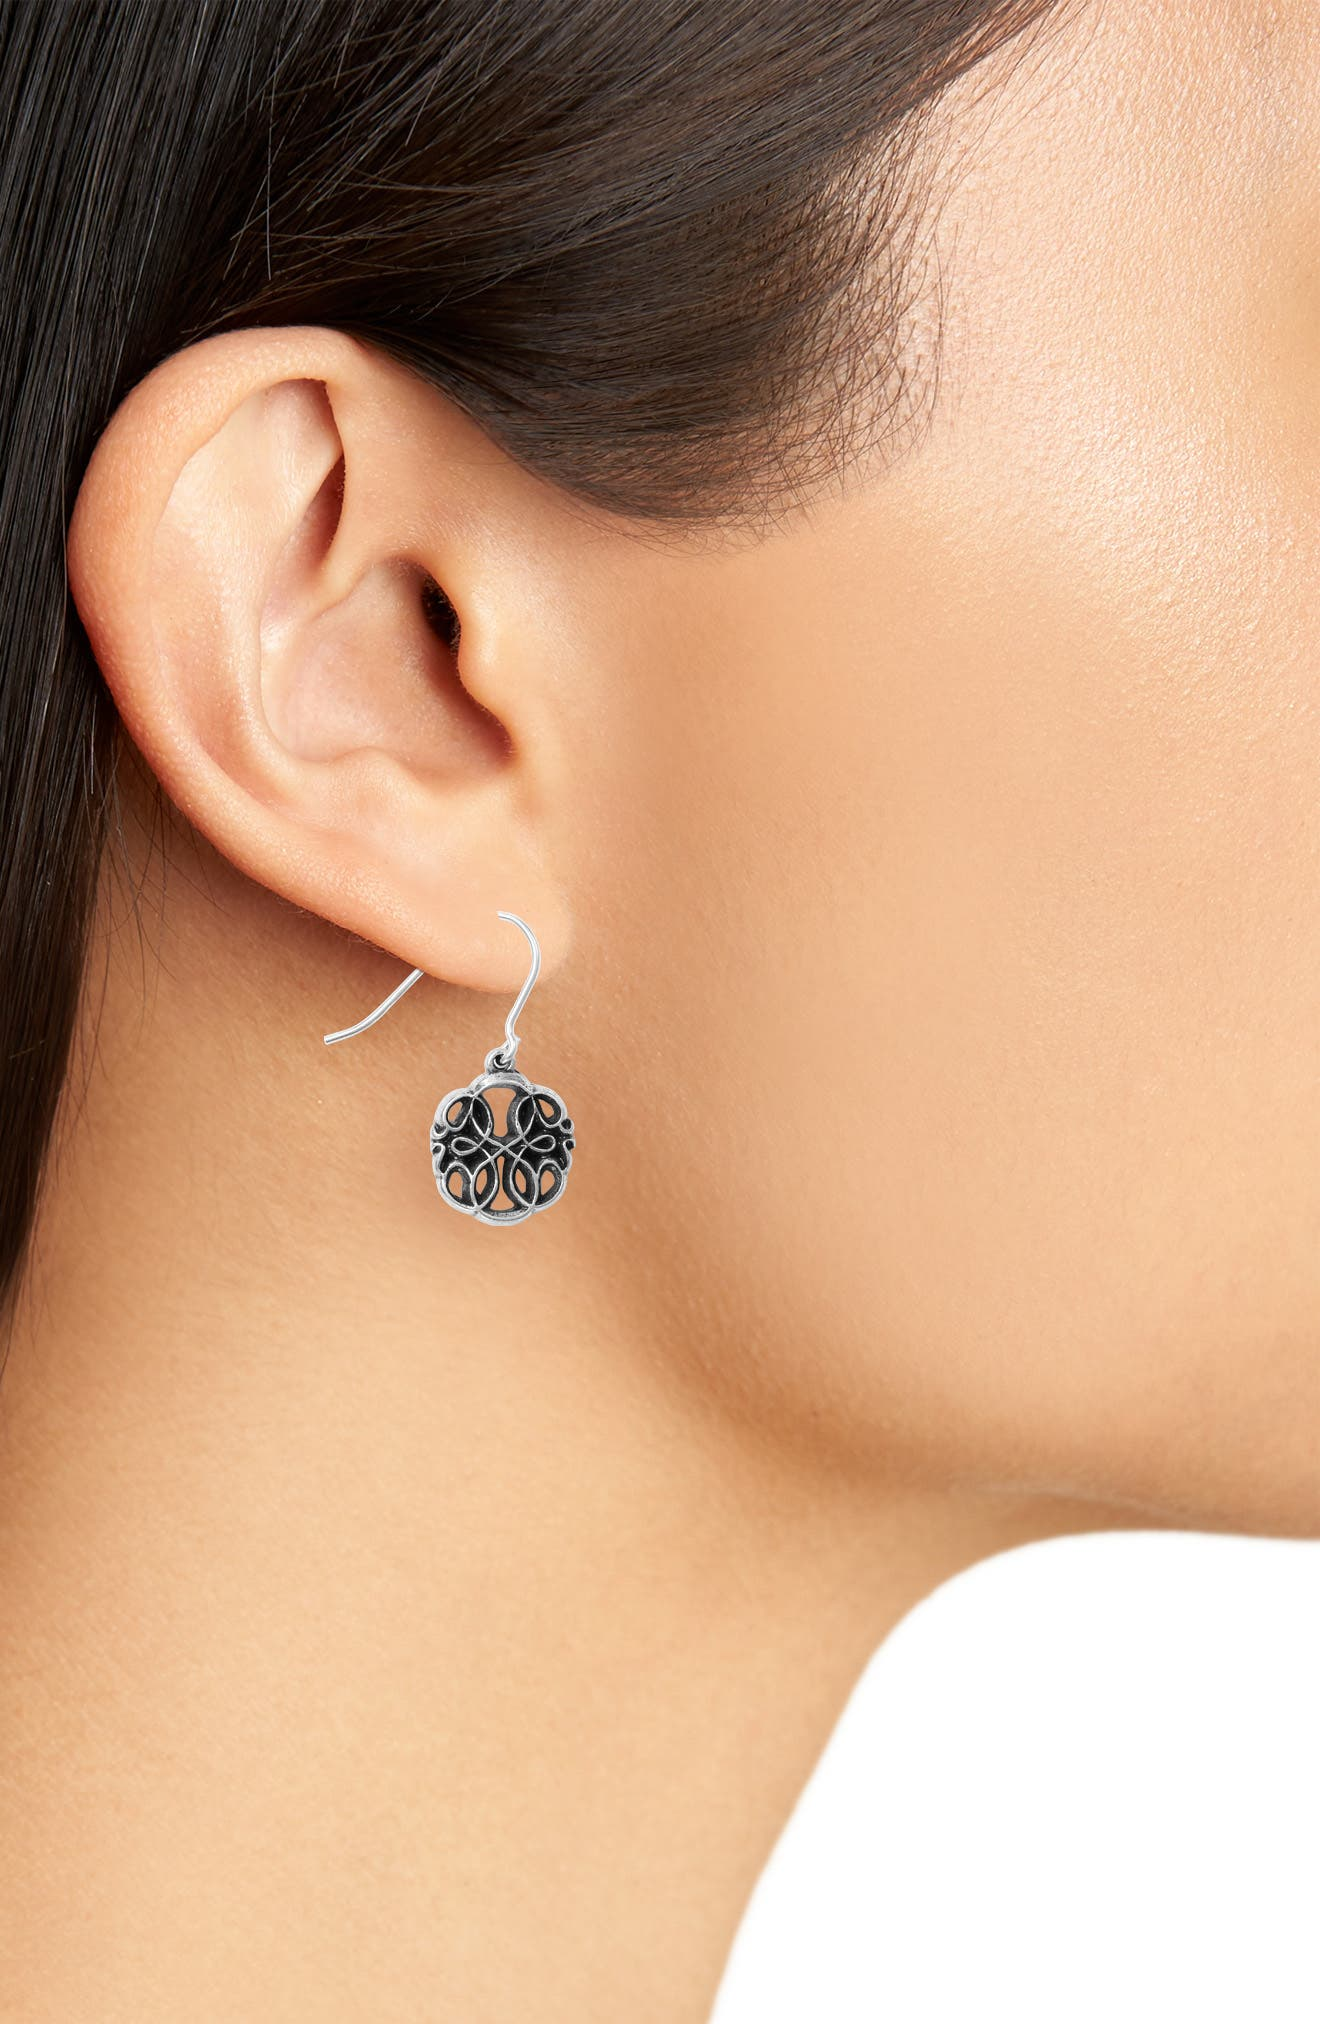 Path of Life Drop Earrings,                             Alternate thumbnail 2, color,                             SILVER